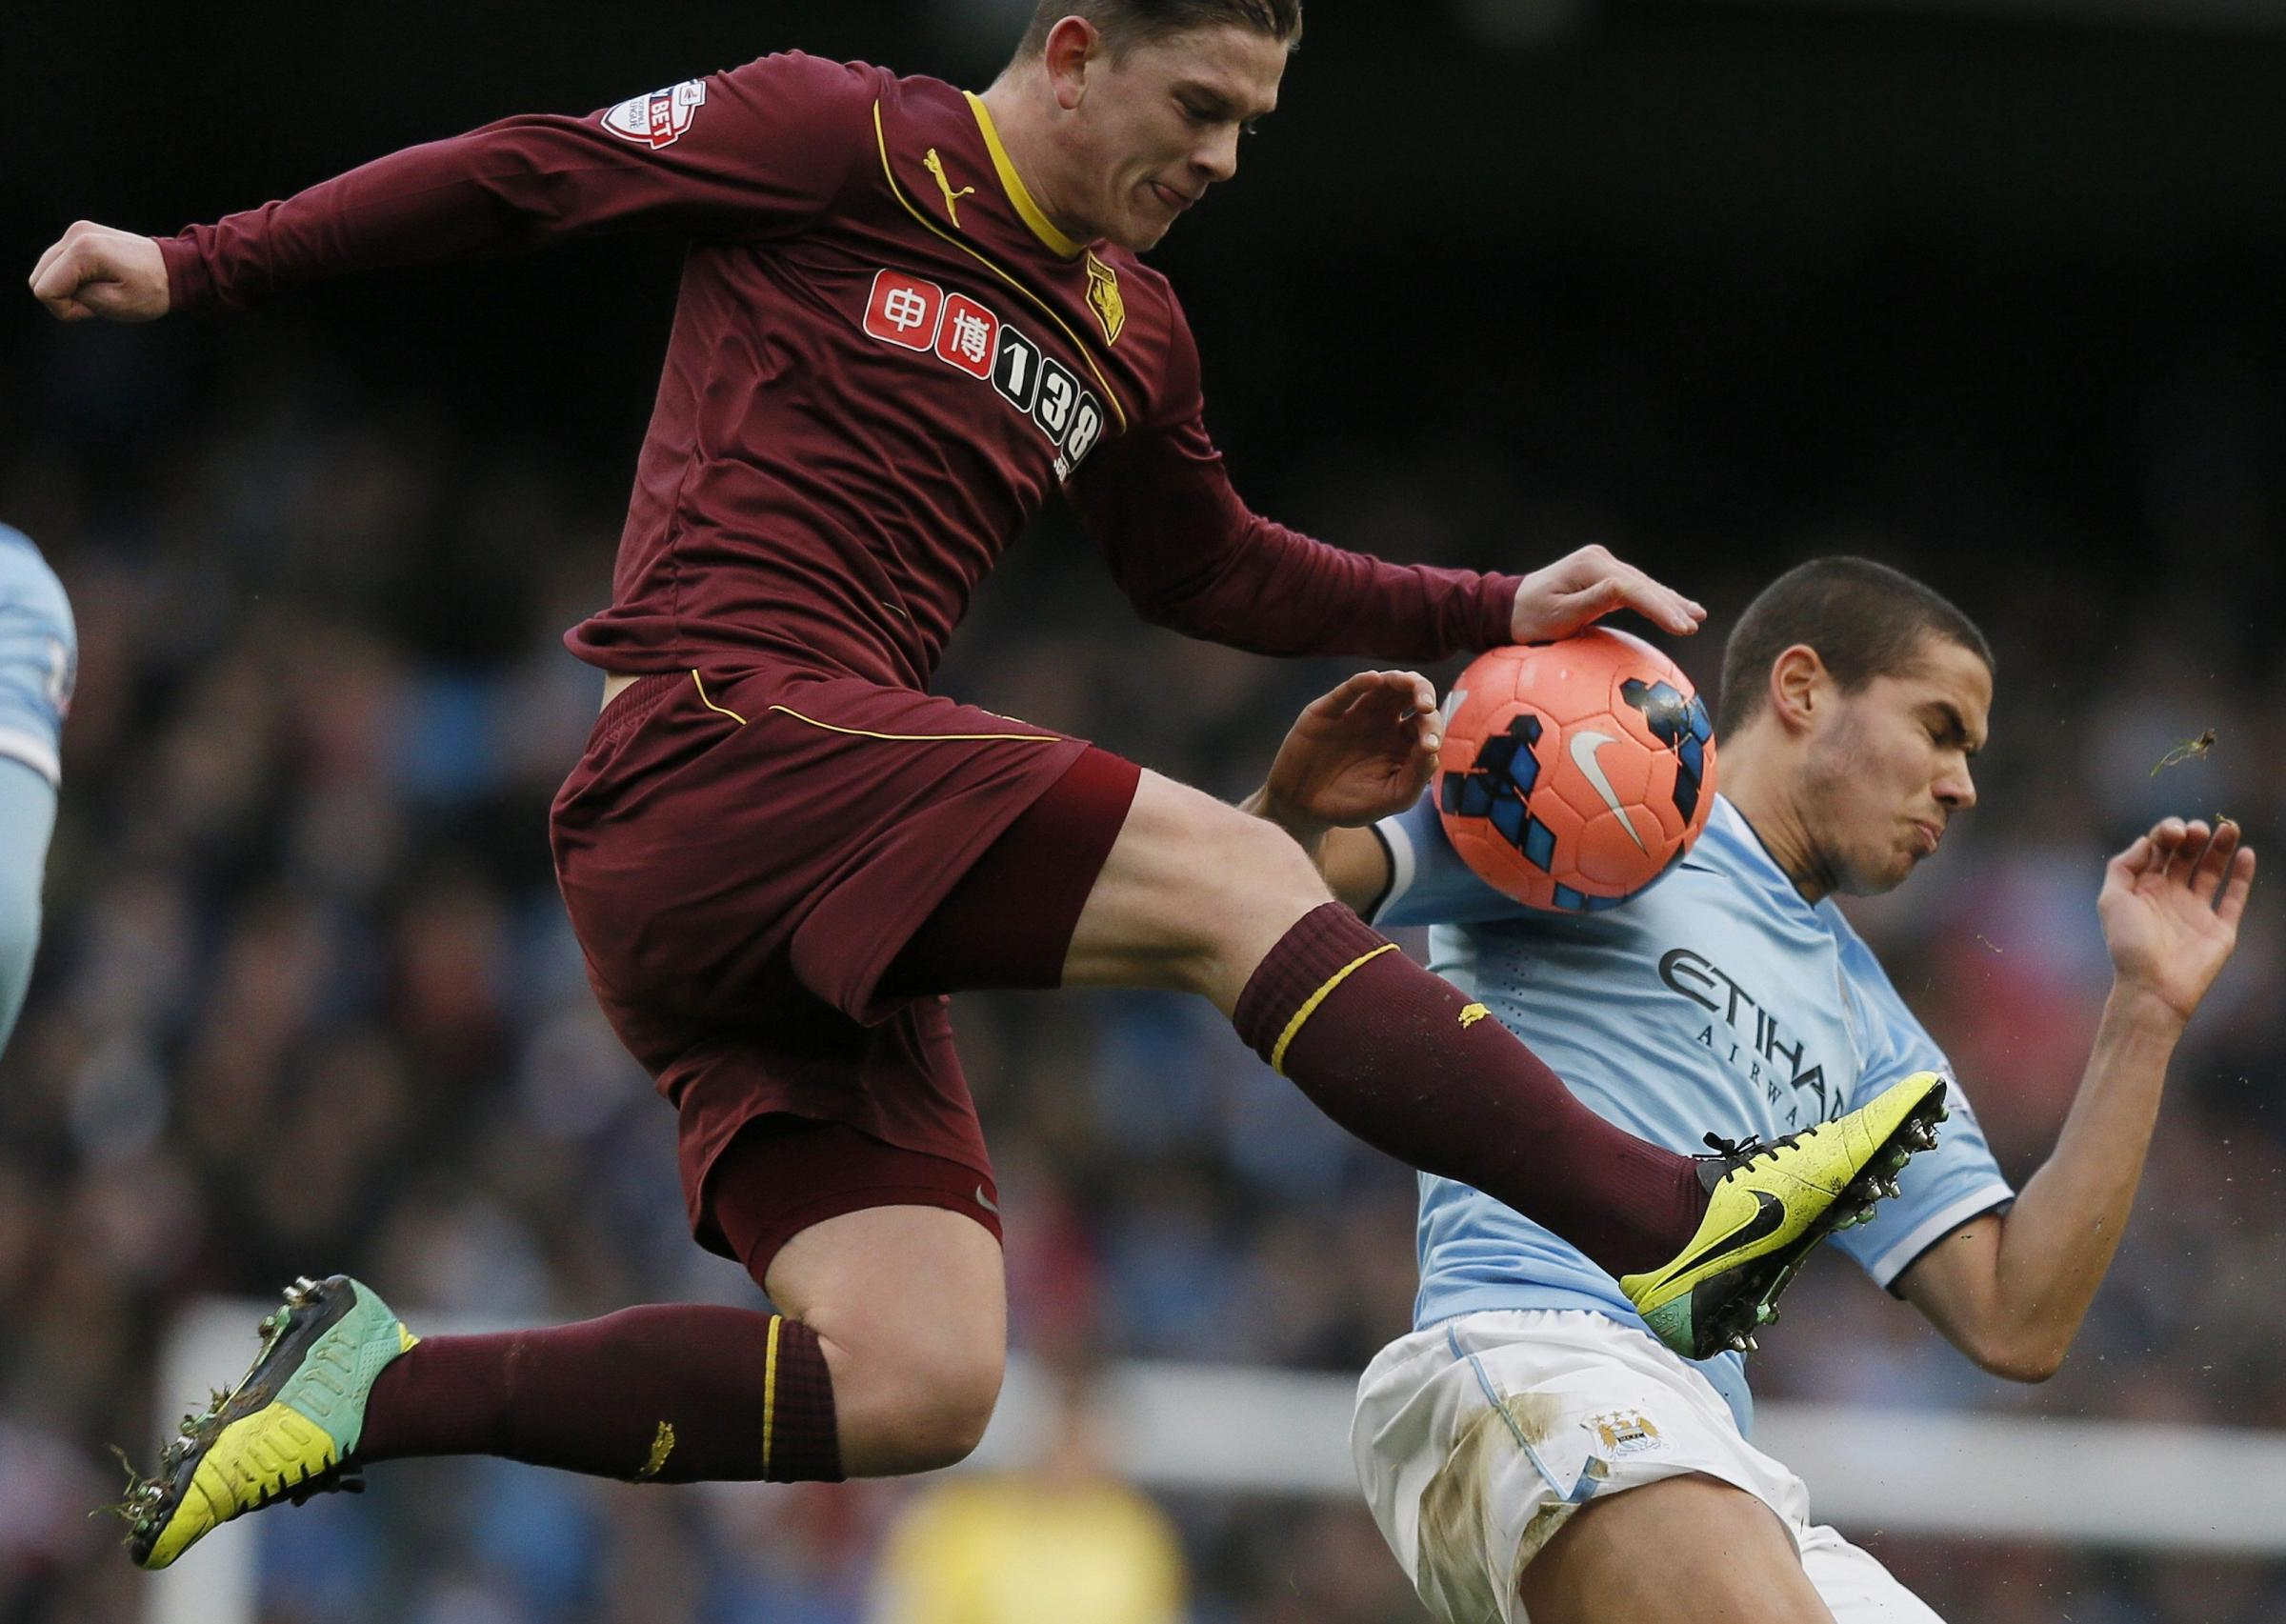 Sean Murray impressed at the weekend, unlike Manchester City's Jack Rodwell who is also pictured. Action Images